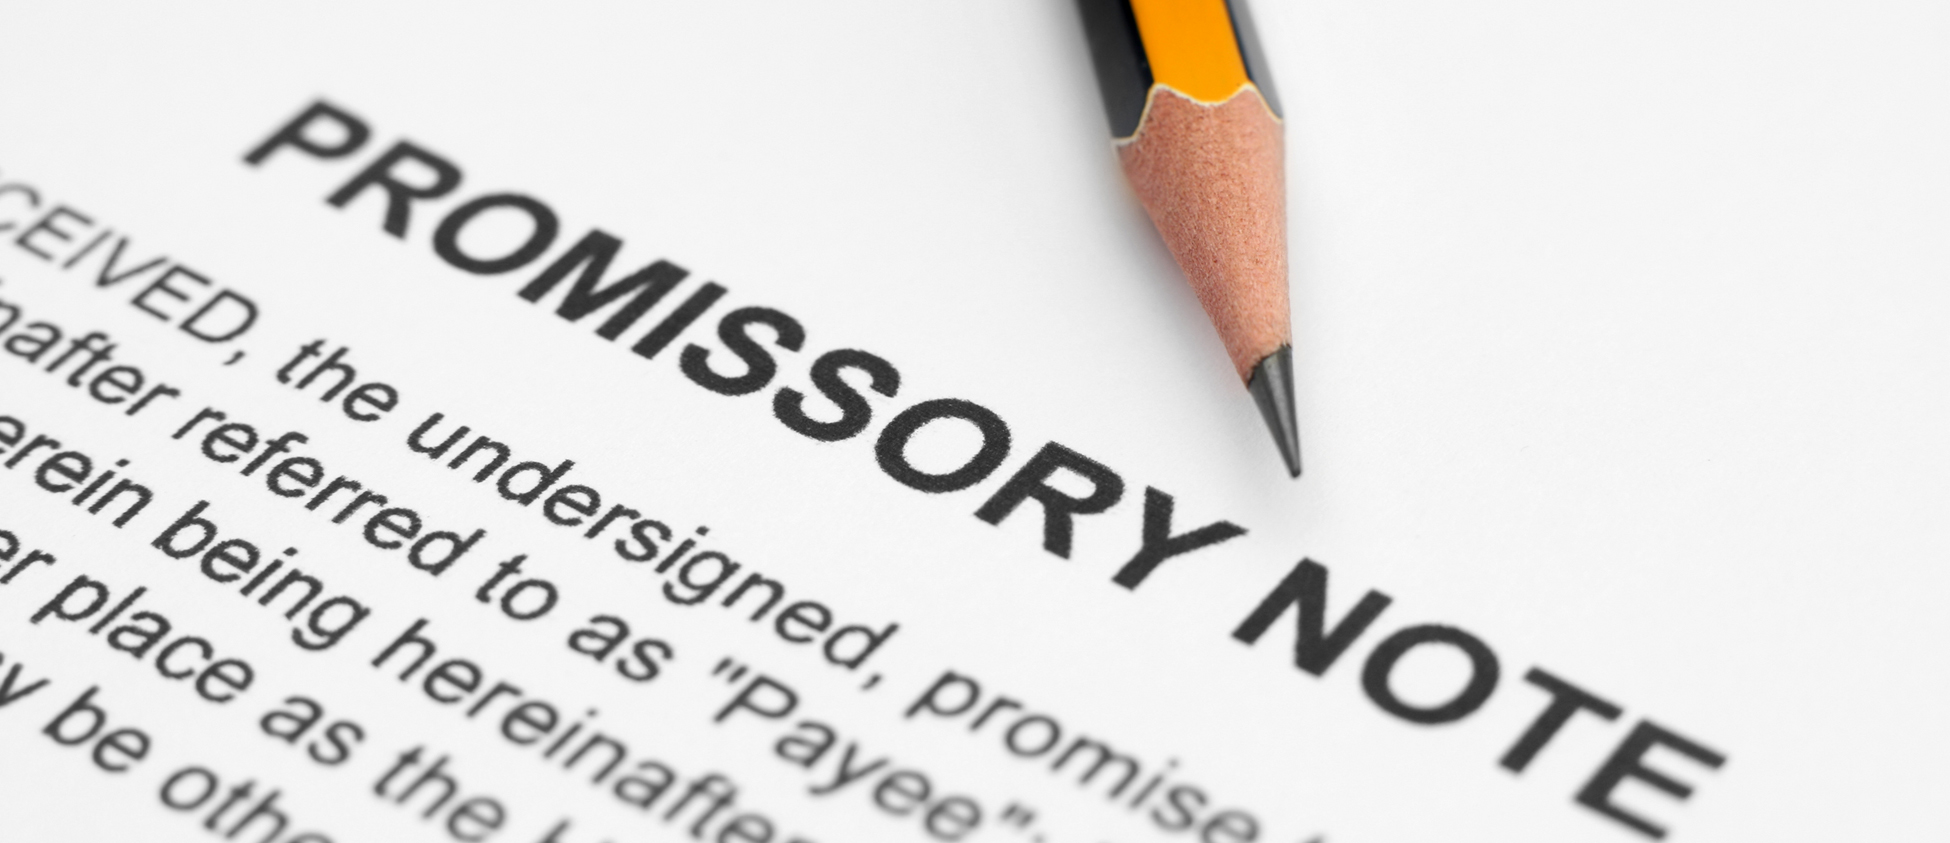 promissory notes lawyer